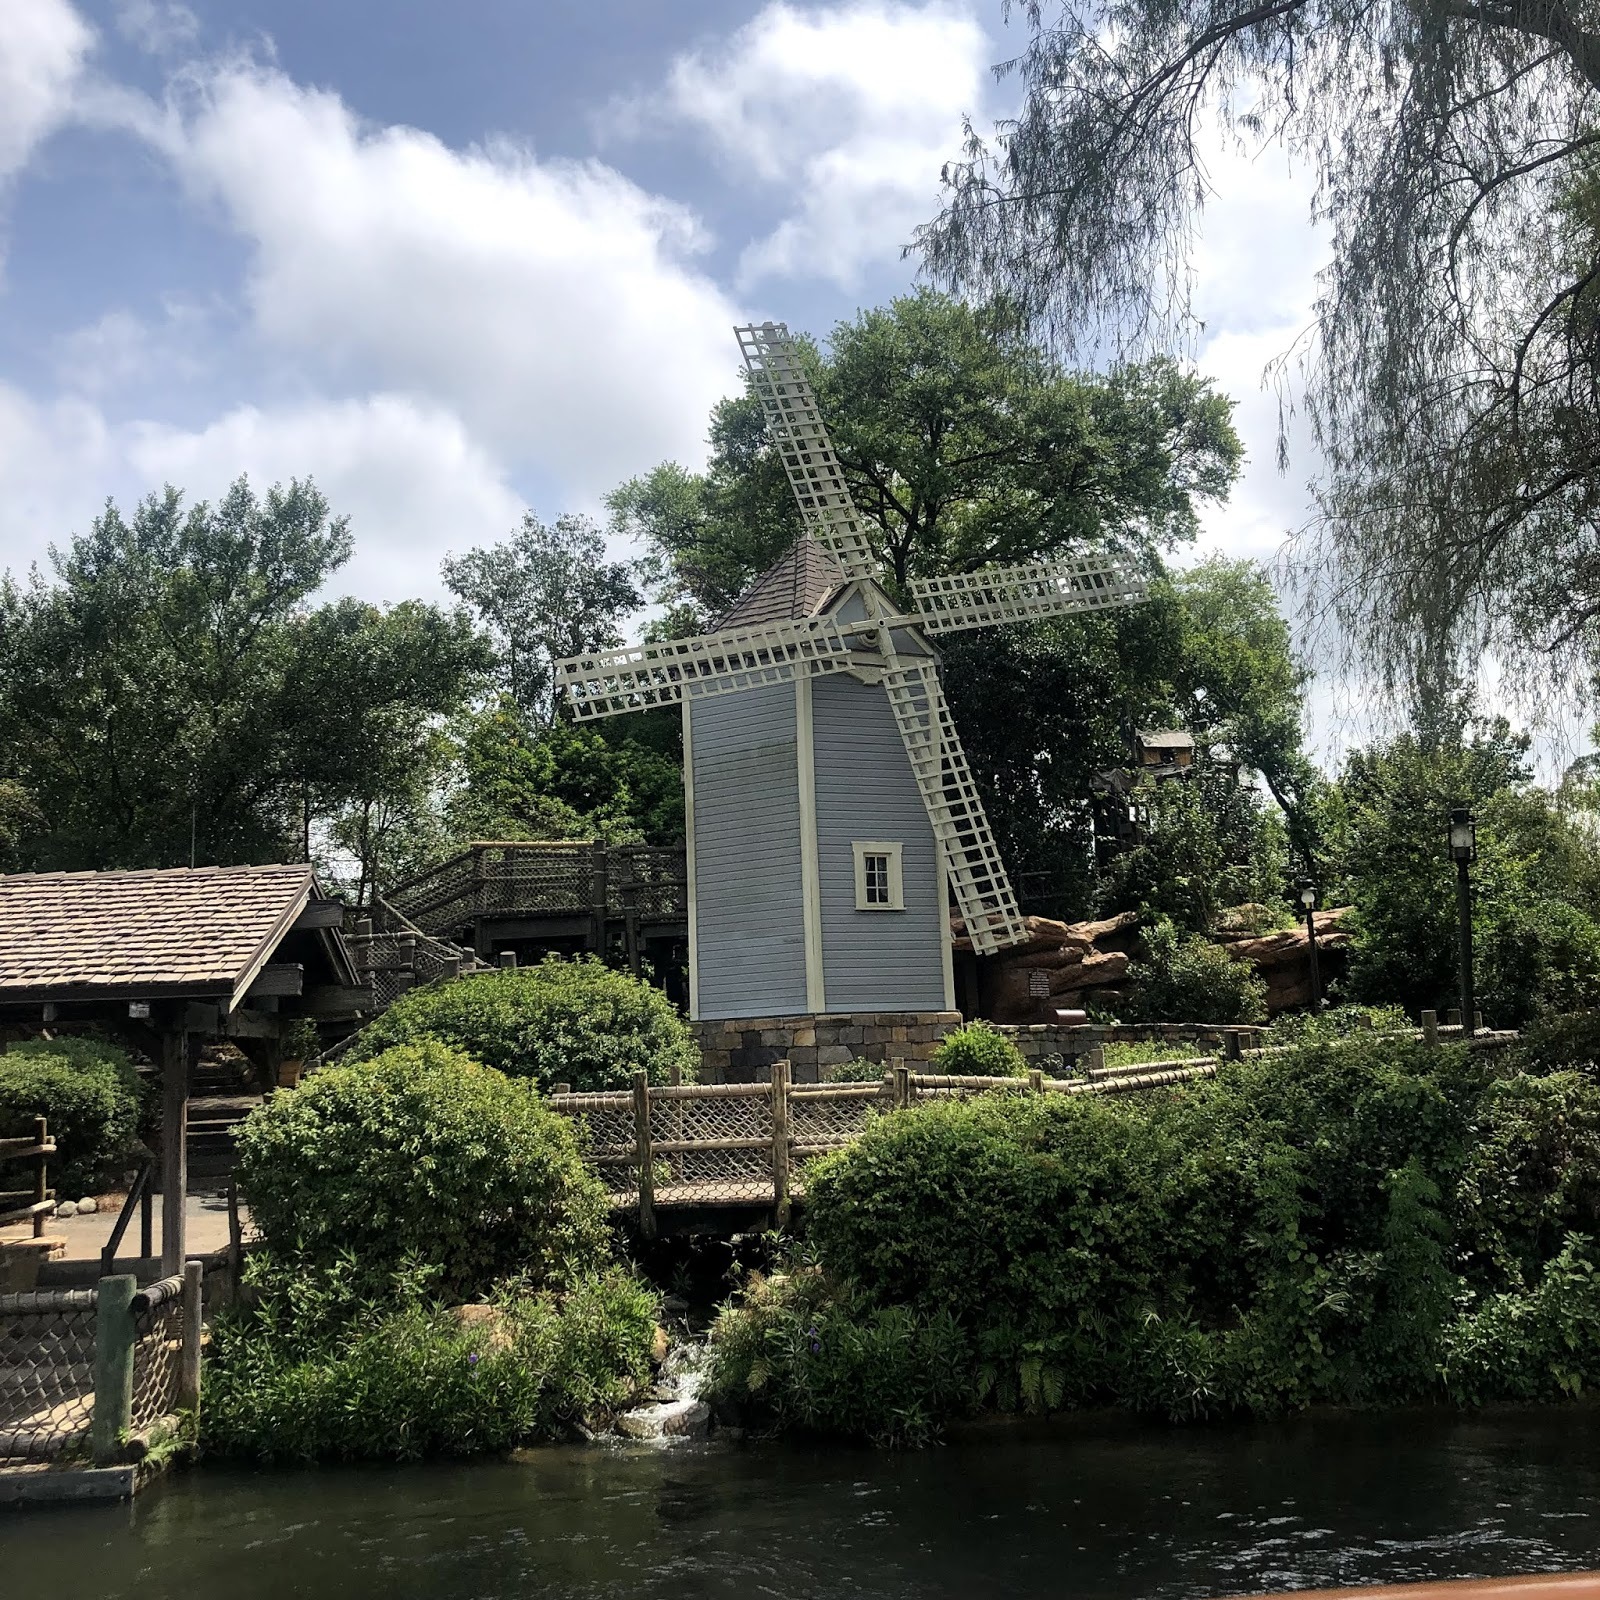 Stephanie Kamp Blog: Disney Trip March 2019